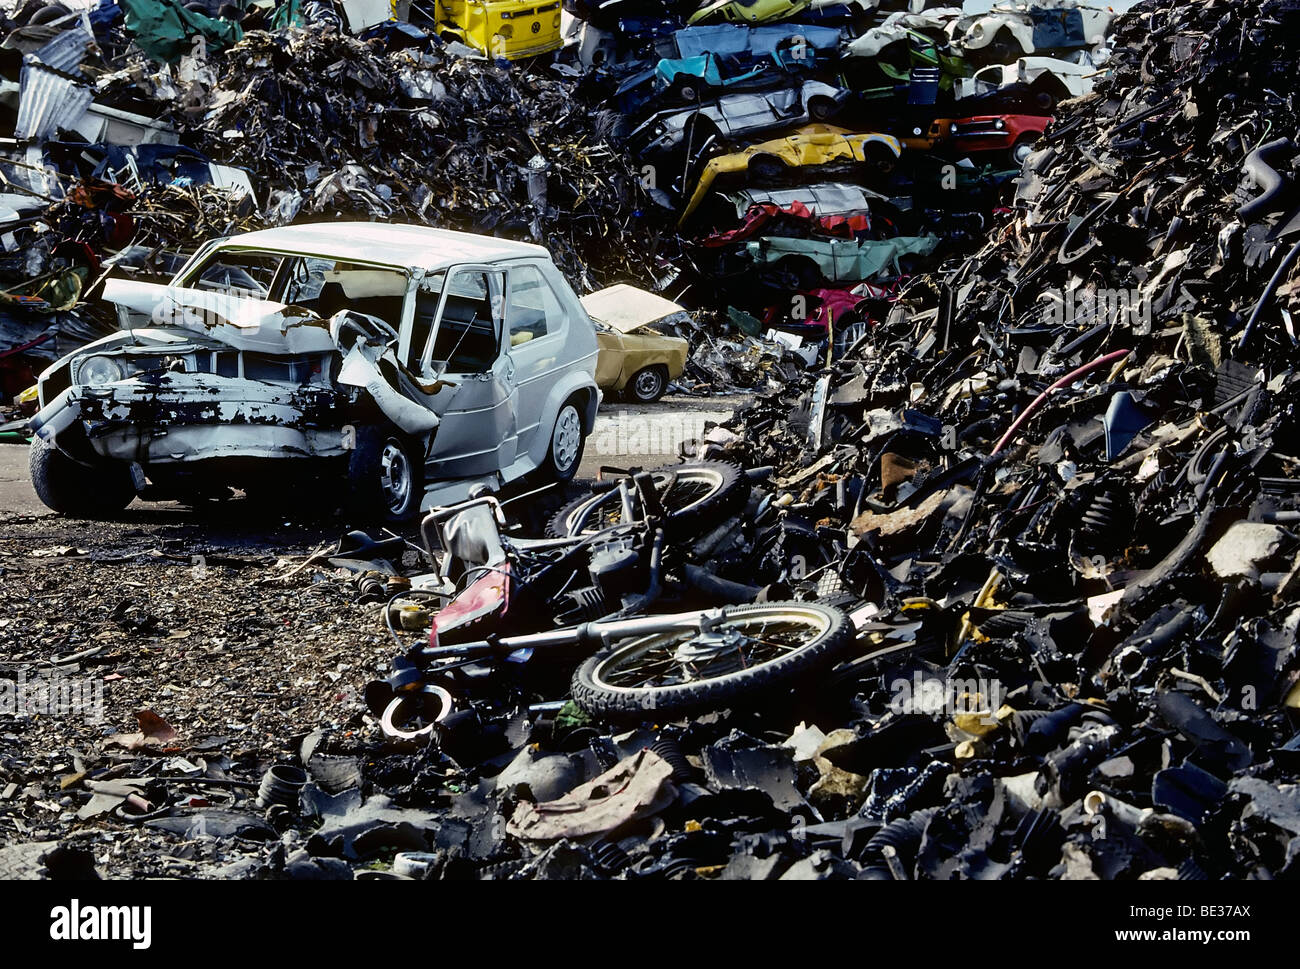 Buy Salvage Cars In Germany